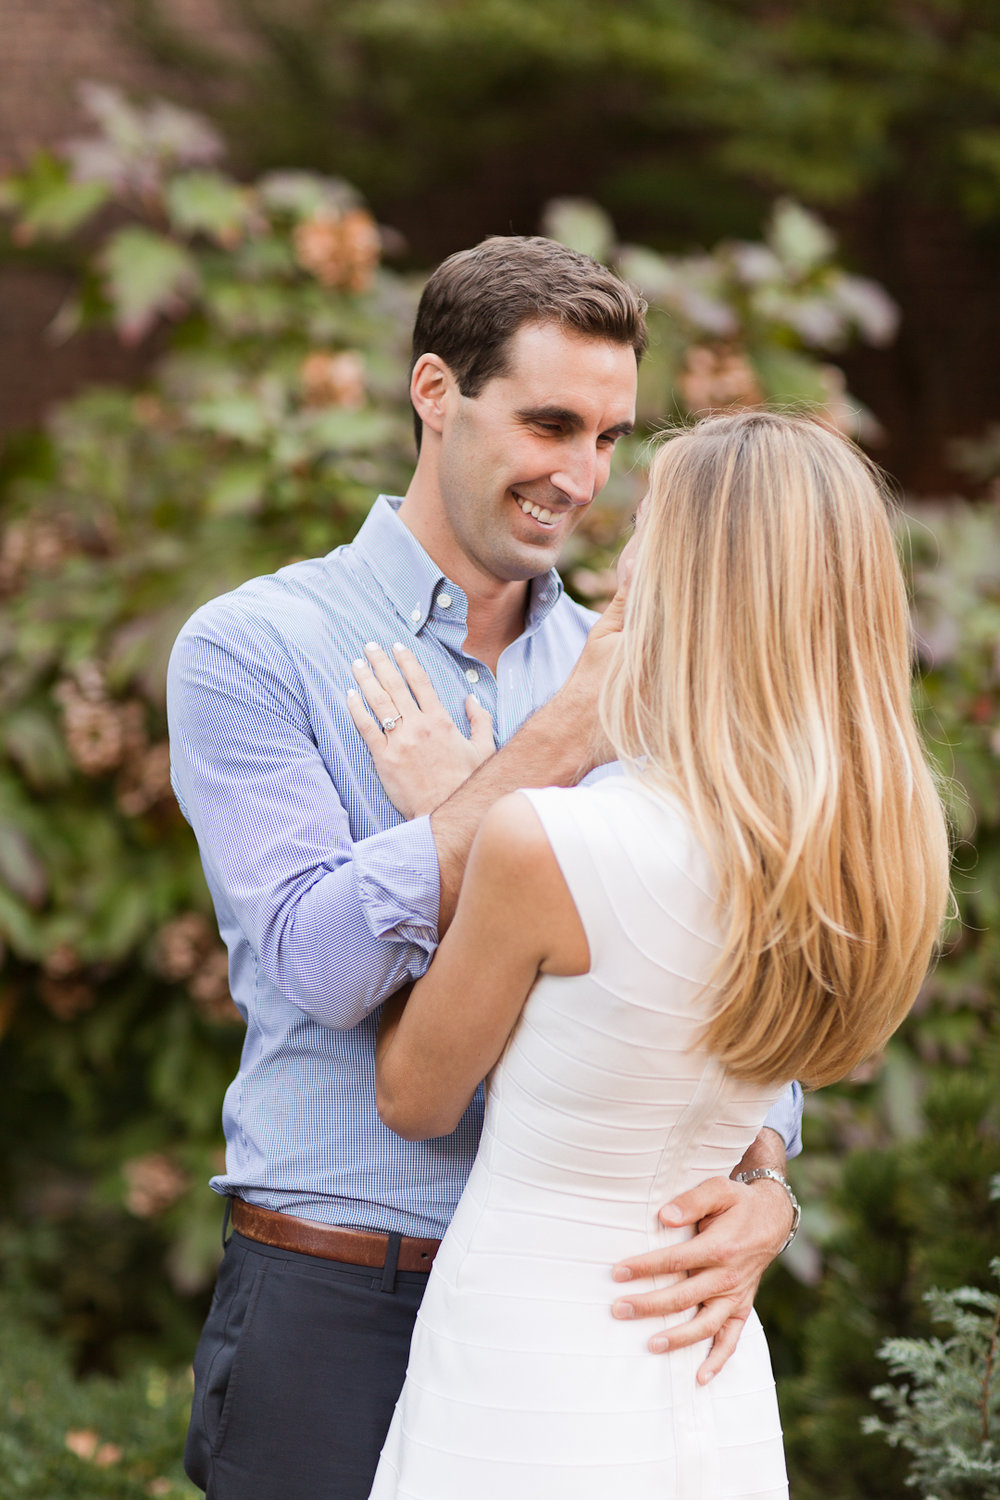 Melissa Kruse Photography - Daniece & Chris West Village Engagement Photos-106.jpg